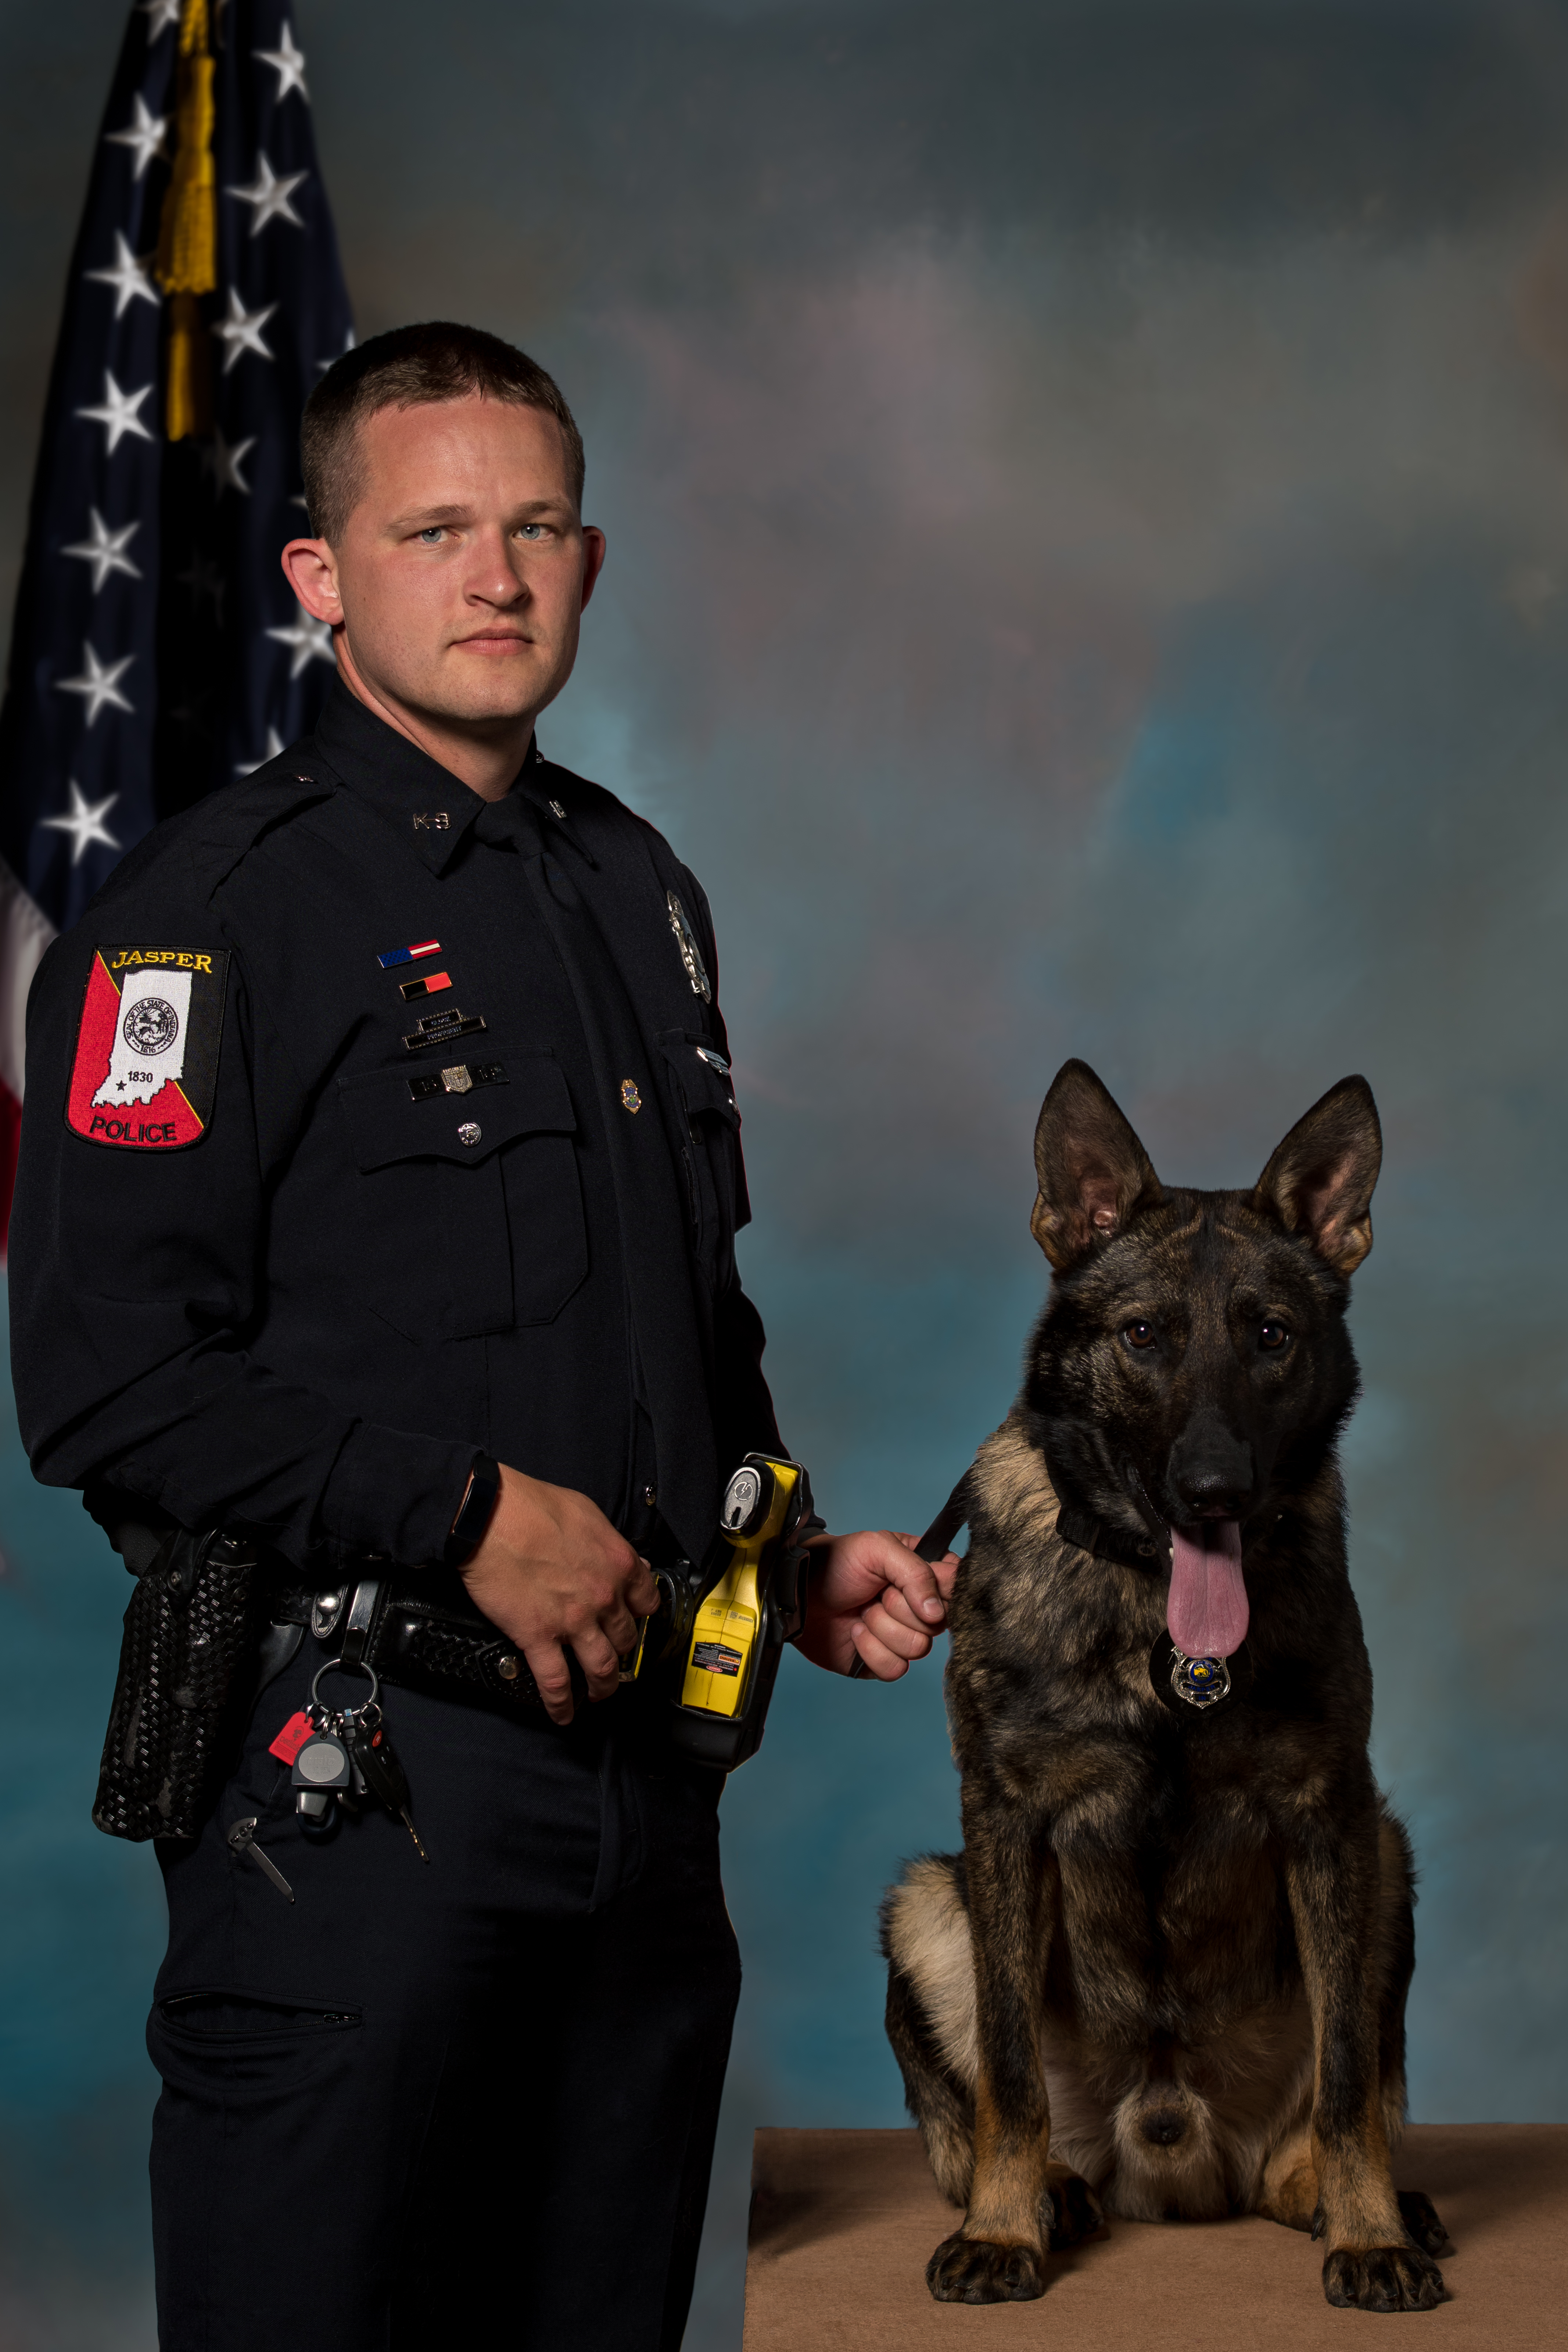 2019 Roll Call_Brent Duncan and K-9 Mack